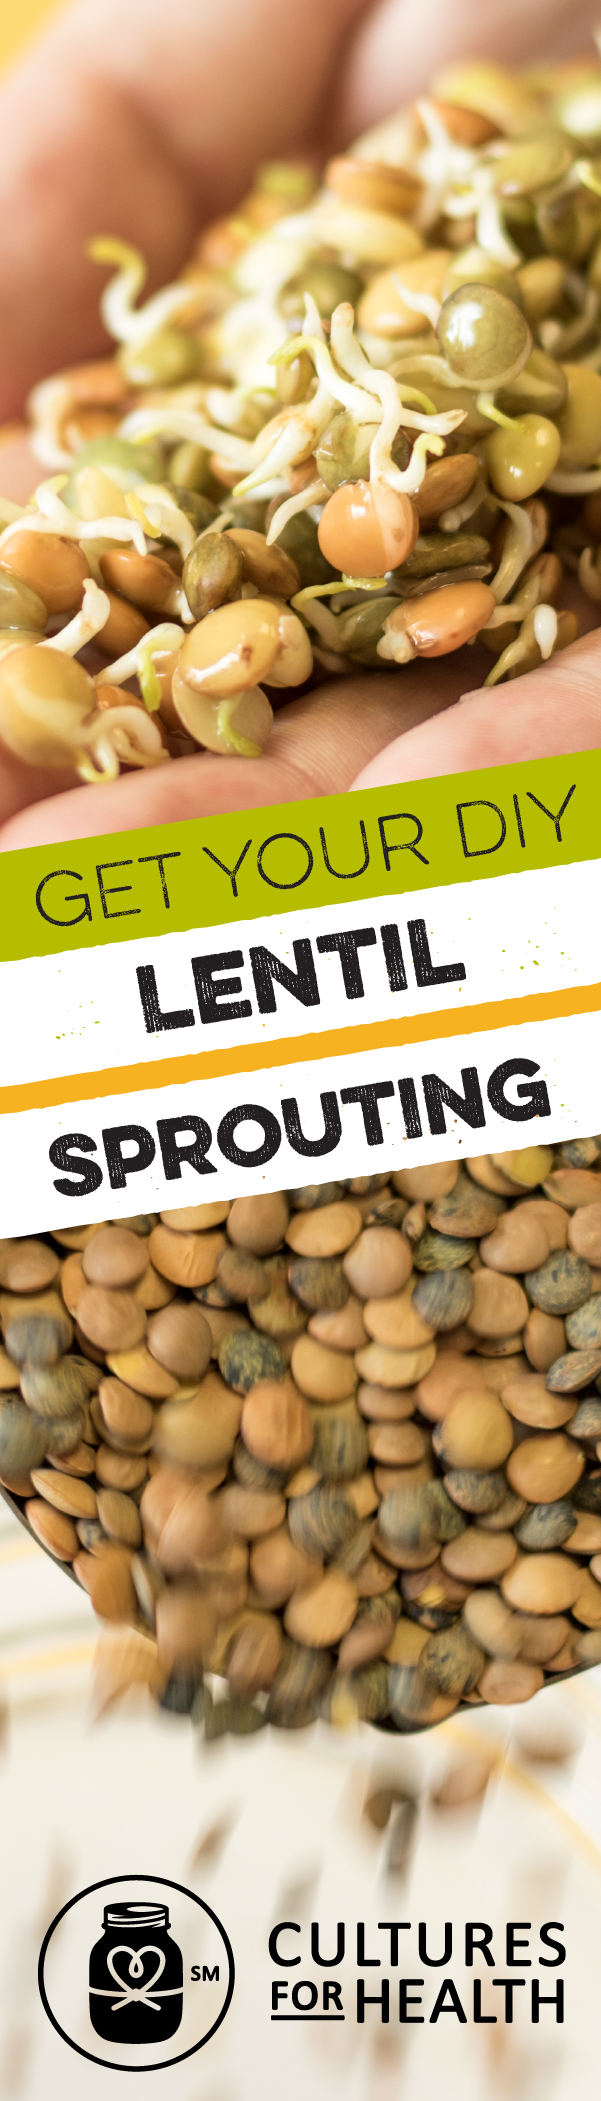 Straightforward And Fun This Kit Arrives Filled With All You Need To Successfully Begin Sprouting Lentils Are Per How To Sprout Lentils Green Lentils Lentils